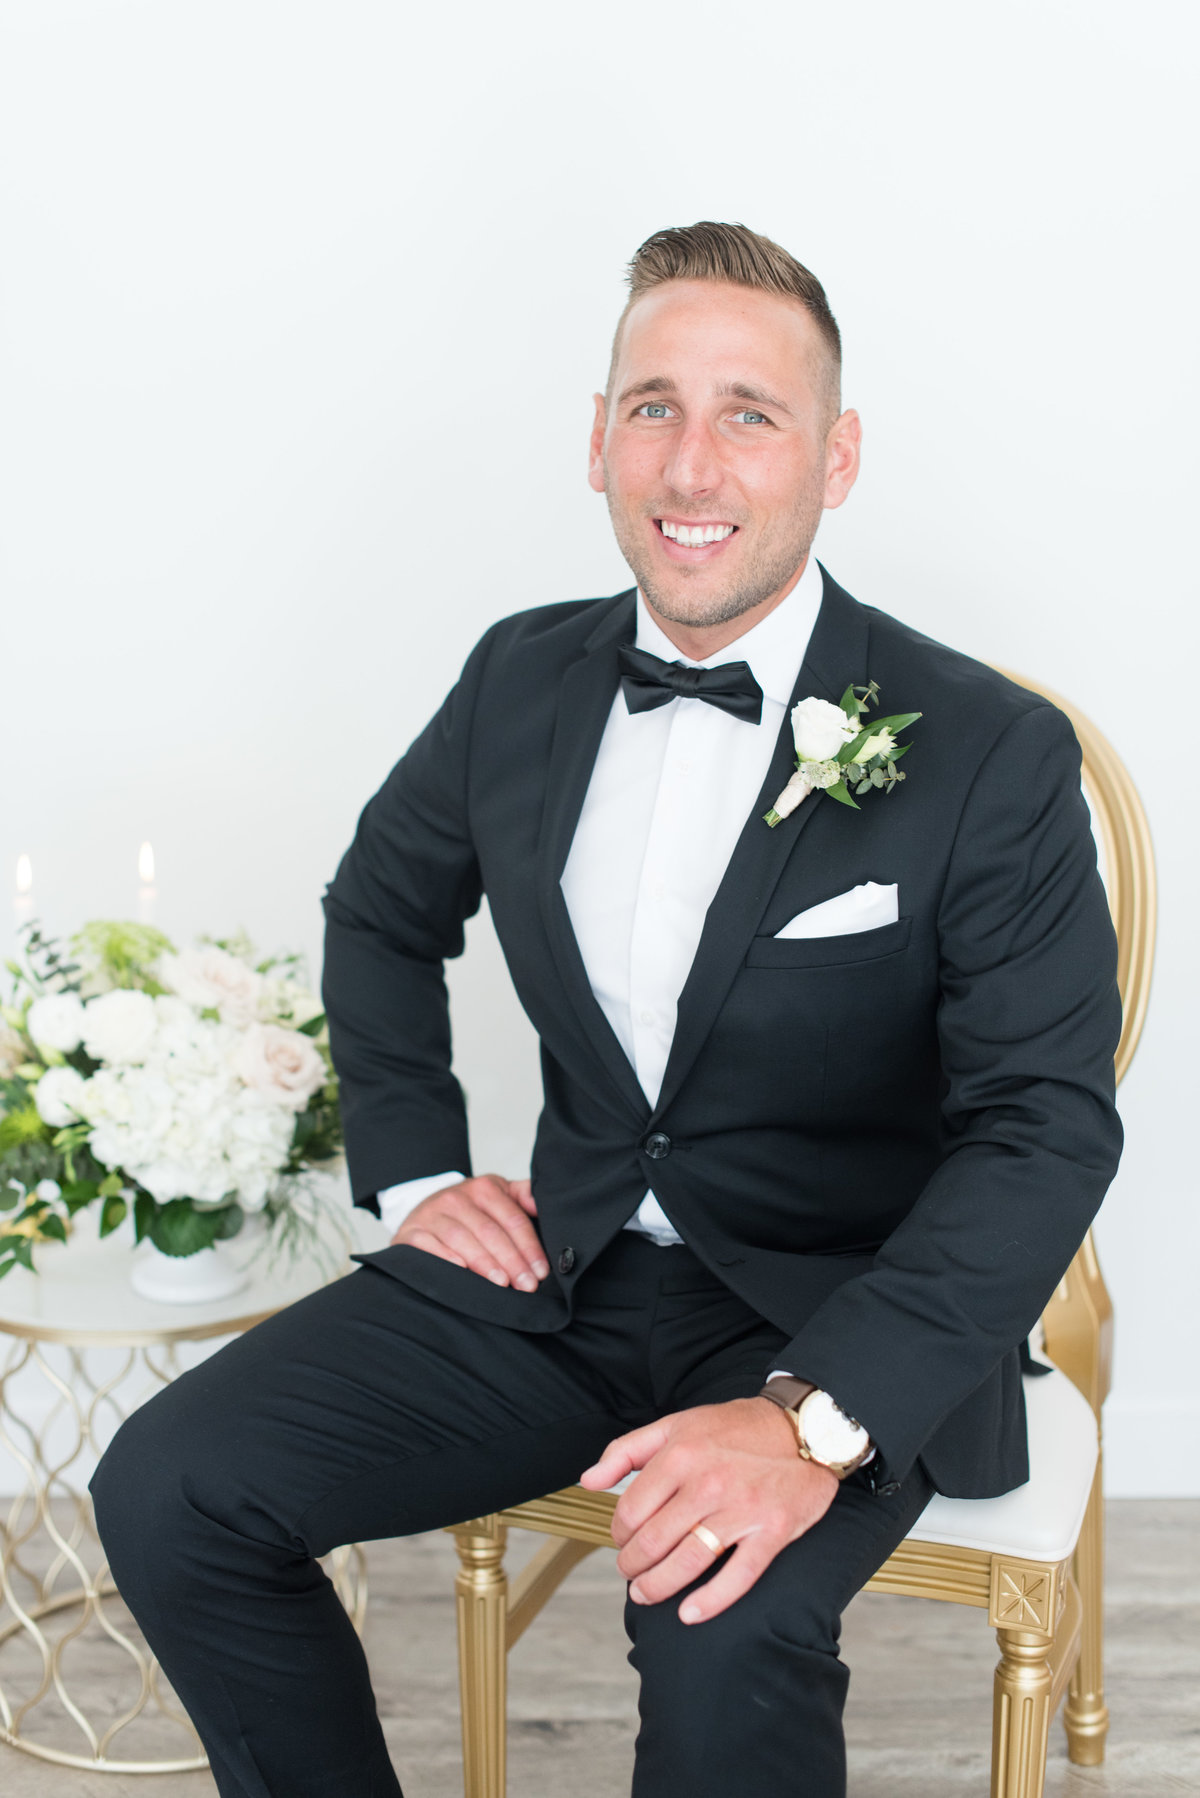 Groom sitting on King Louis chair from Tents & Events in his suit from J.B Evans in Thunder Bay